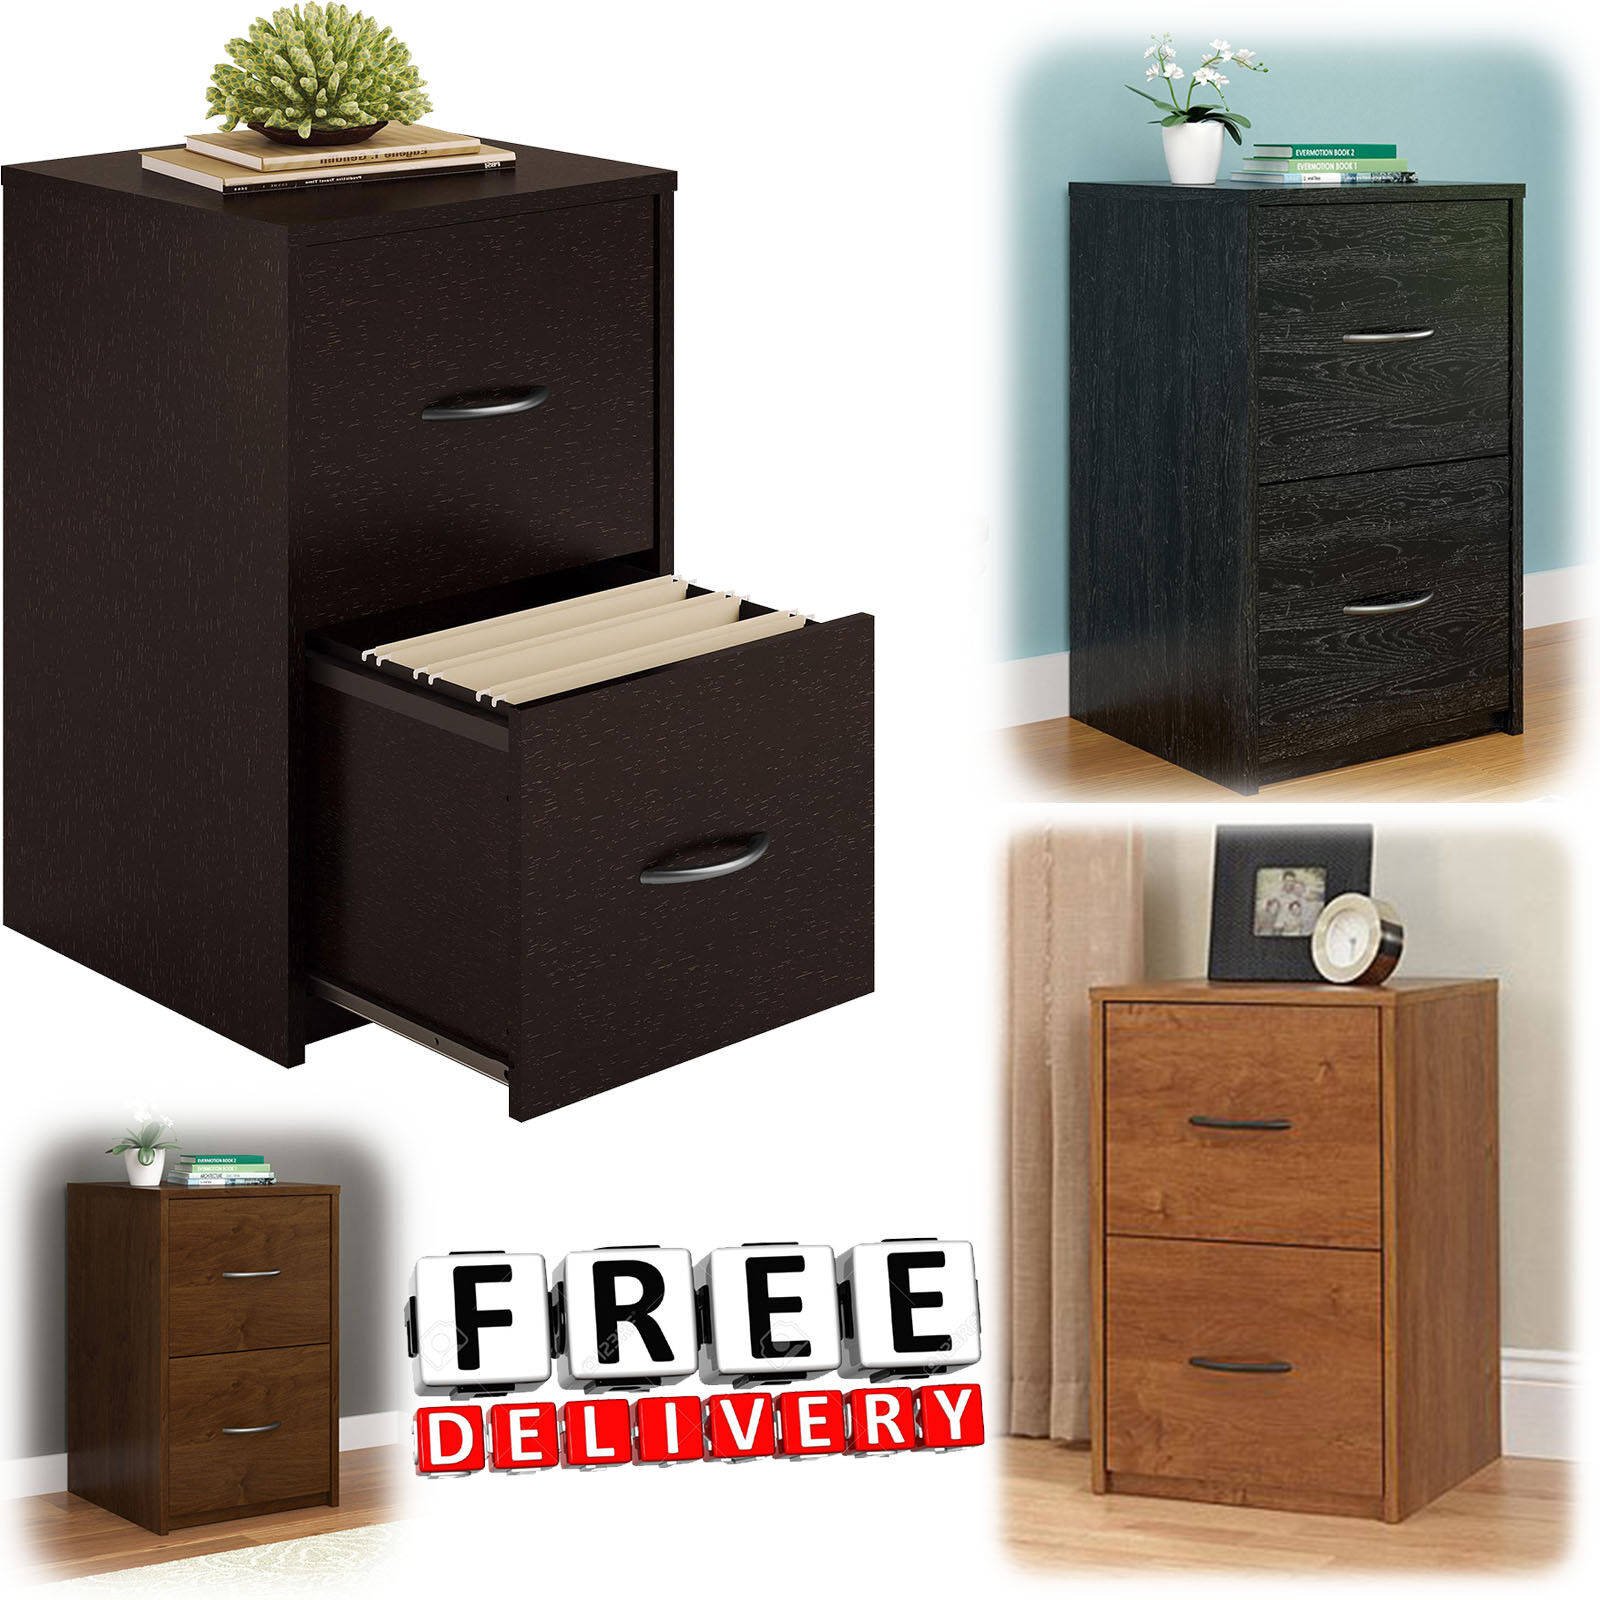 4 Drawer File Cabinet Home Office Documents Storage Furniture Durable For Sale Online Ebay